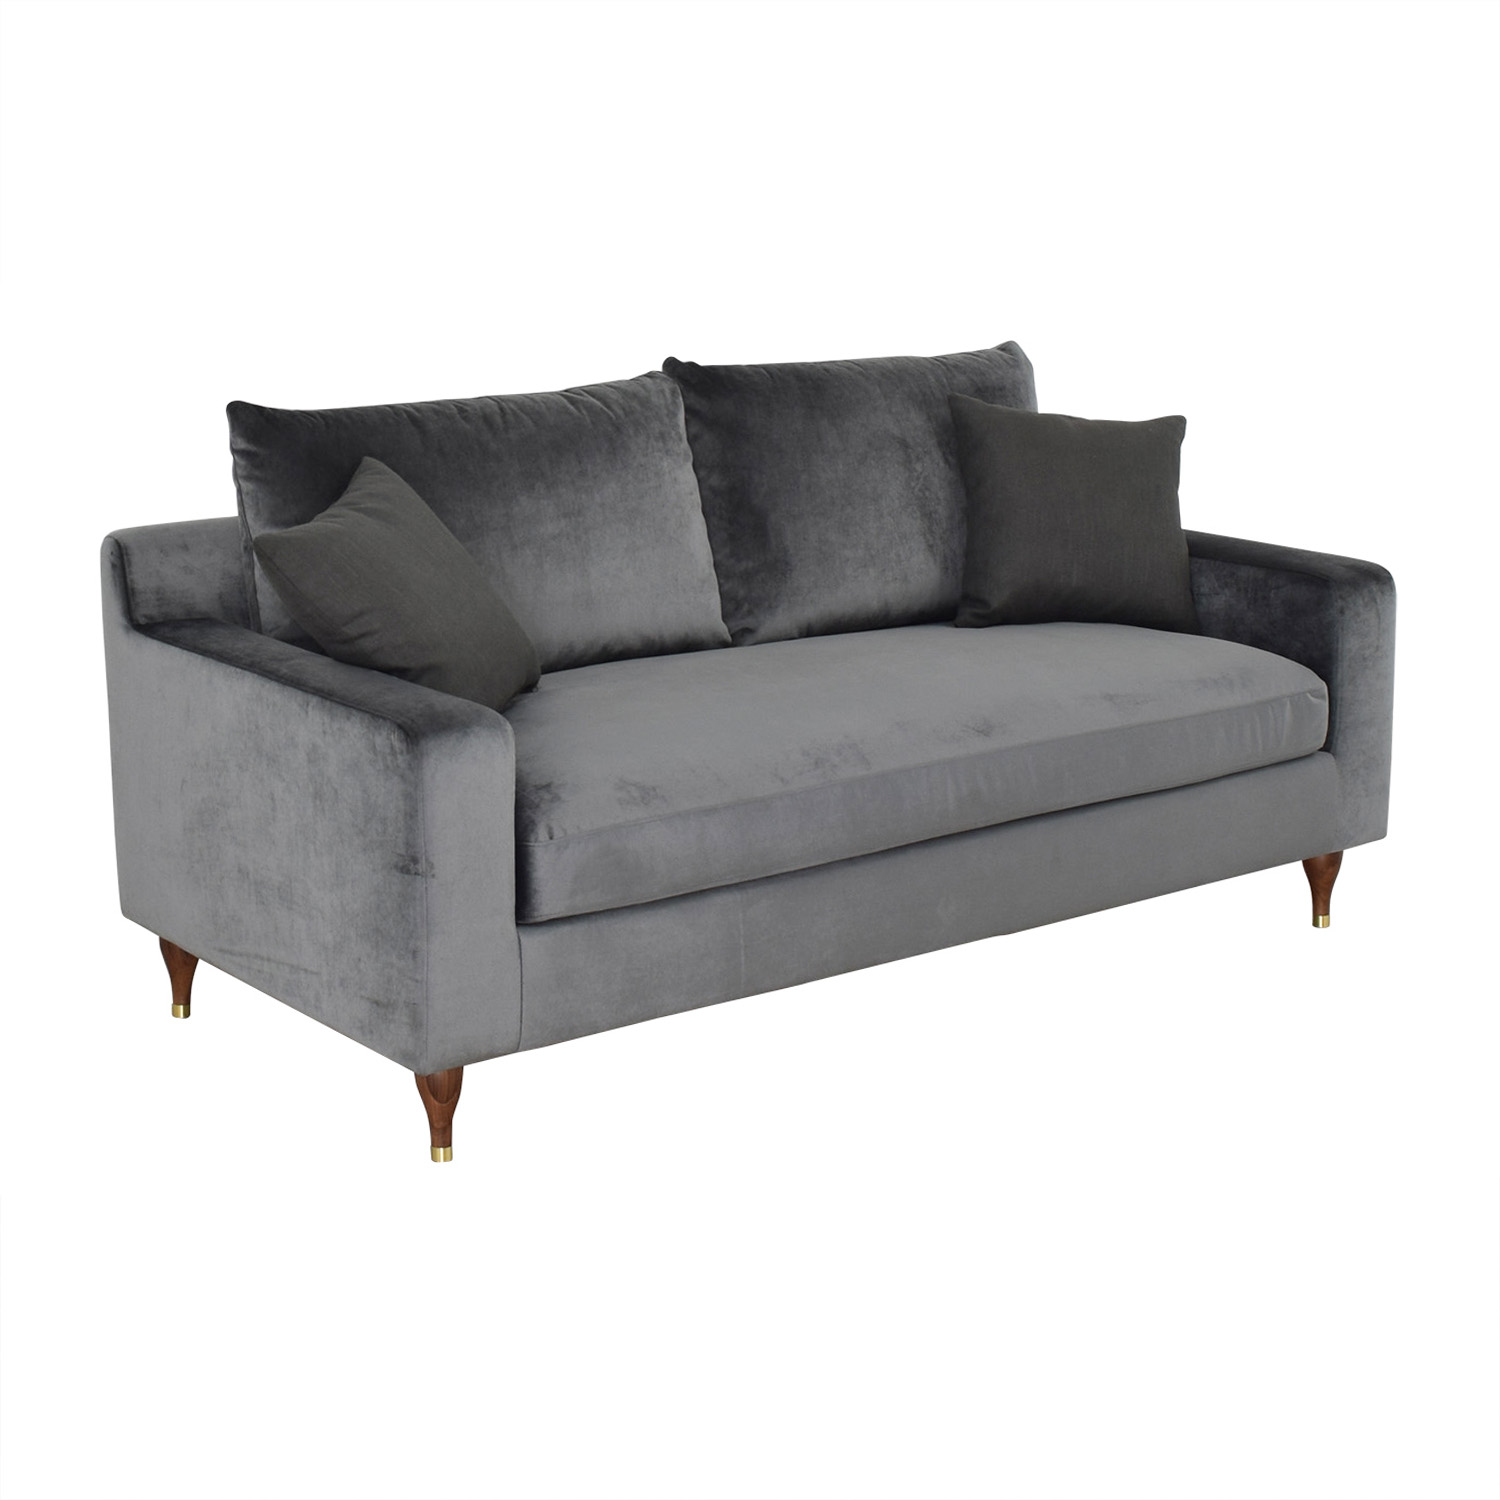 Sloan Mod Velvet Narwhal Single Cushion Sofa Interior Define